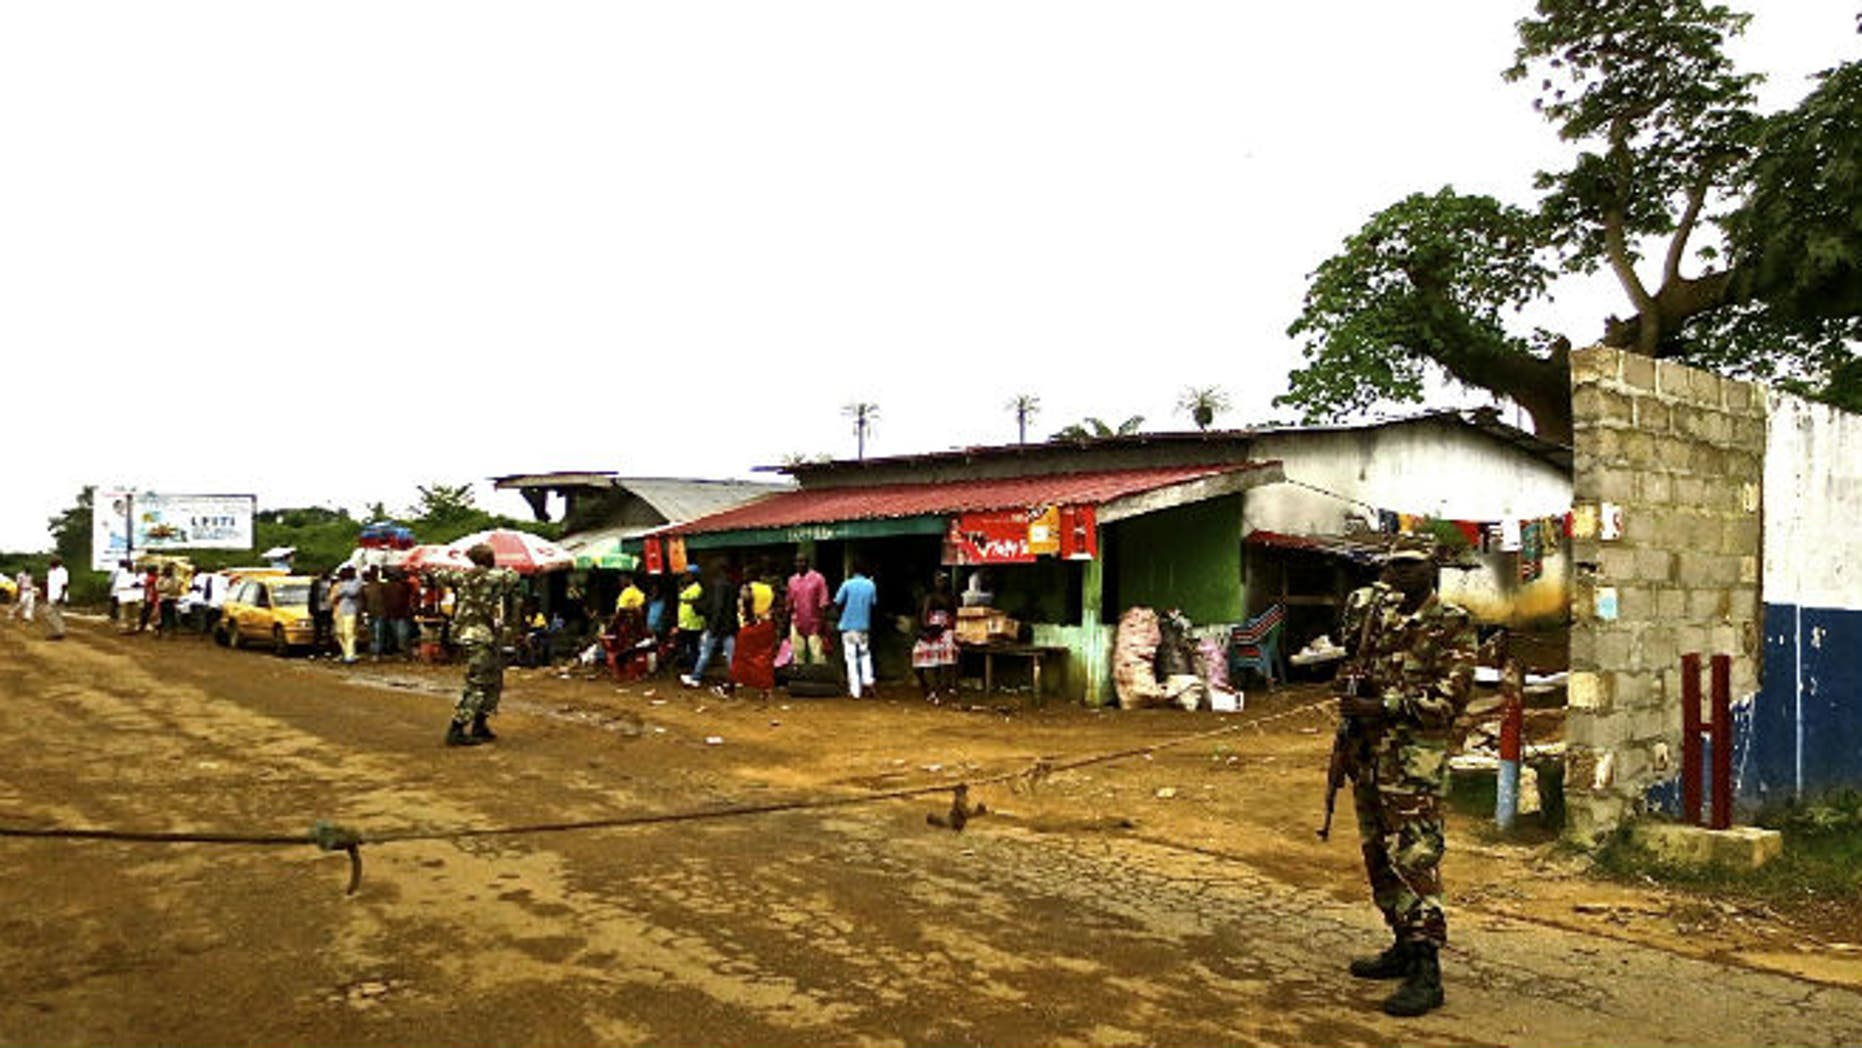 Soldiers from the Liberian army monitor a border checkpoint as part of Operation White Shield to control the Ebola outbreak, at an entrance to Bomi County in northwestern Liberia August 11, 2014. CREDIT: REUTERS/SABRINA KARIM